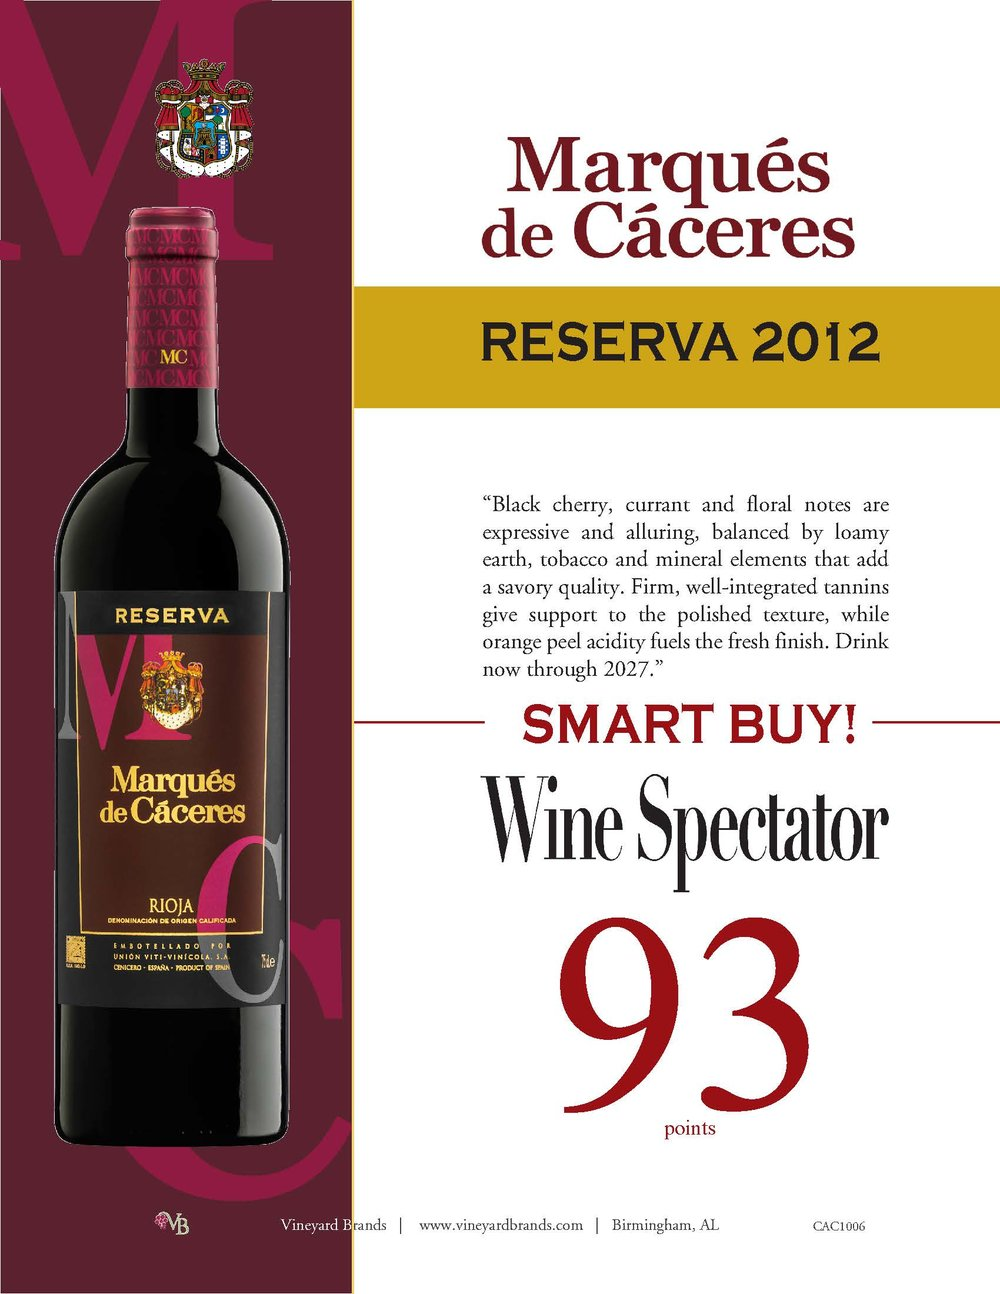 MarquesdeCaceres_Reserva2012.jpg